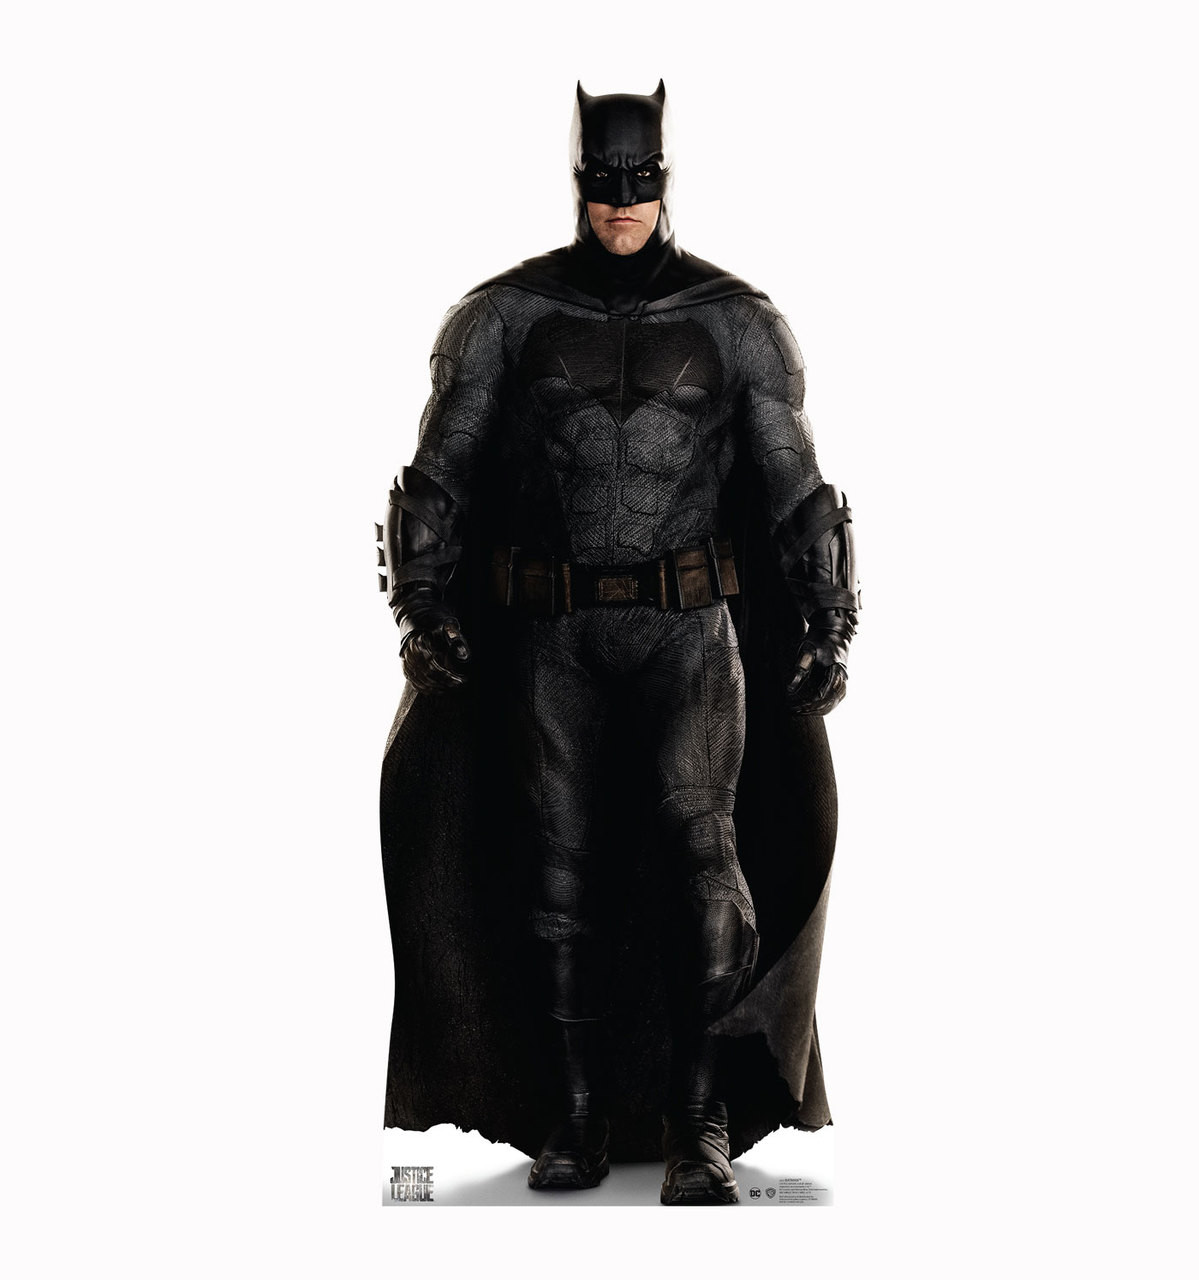 Batman (Justice League) Life Size Cardboard Standup